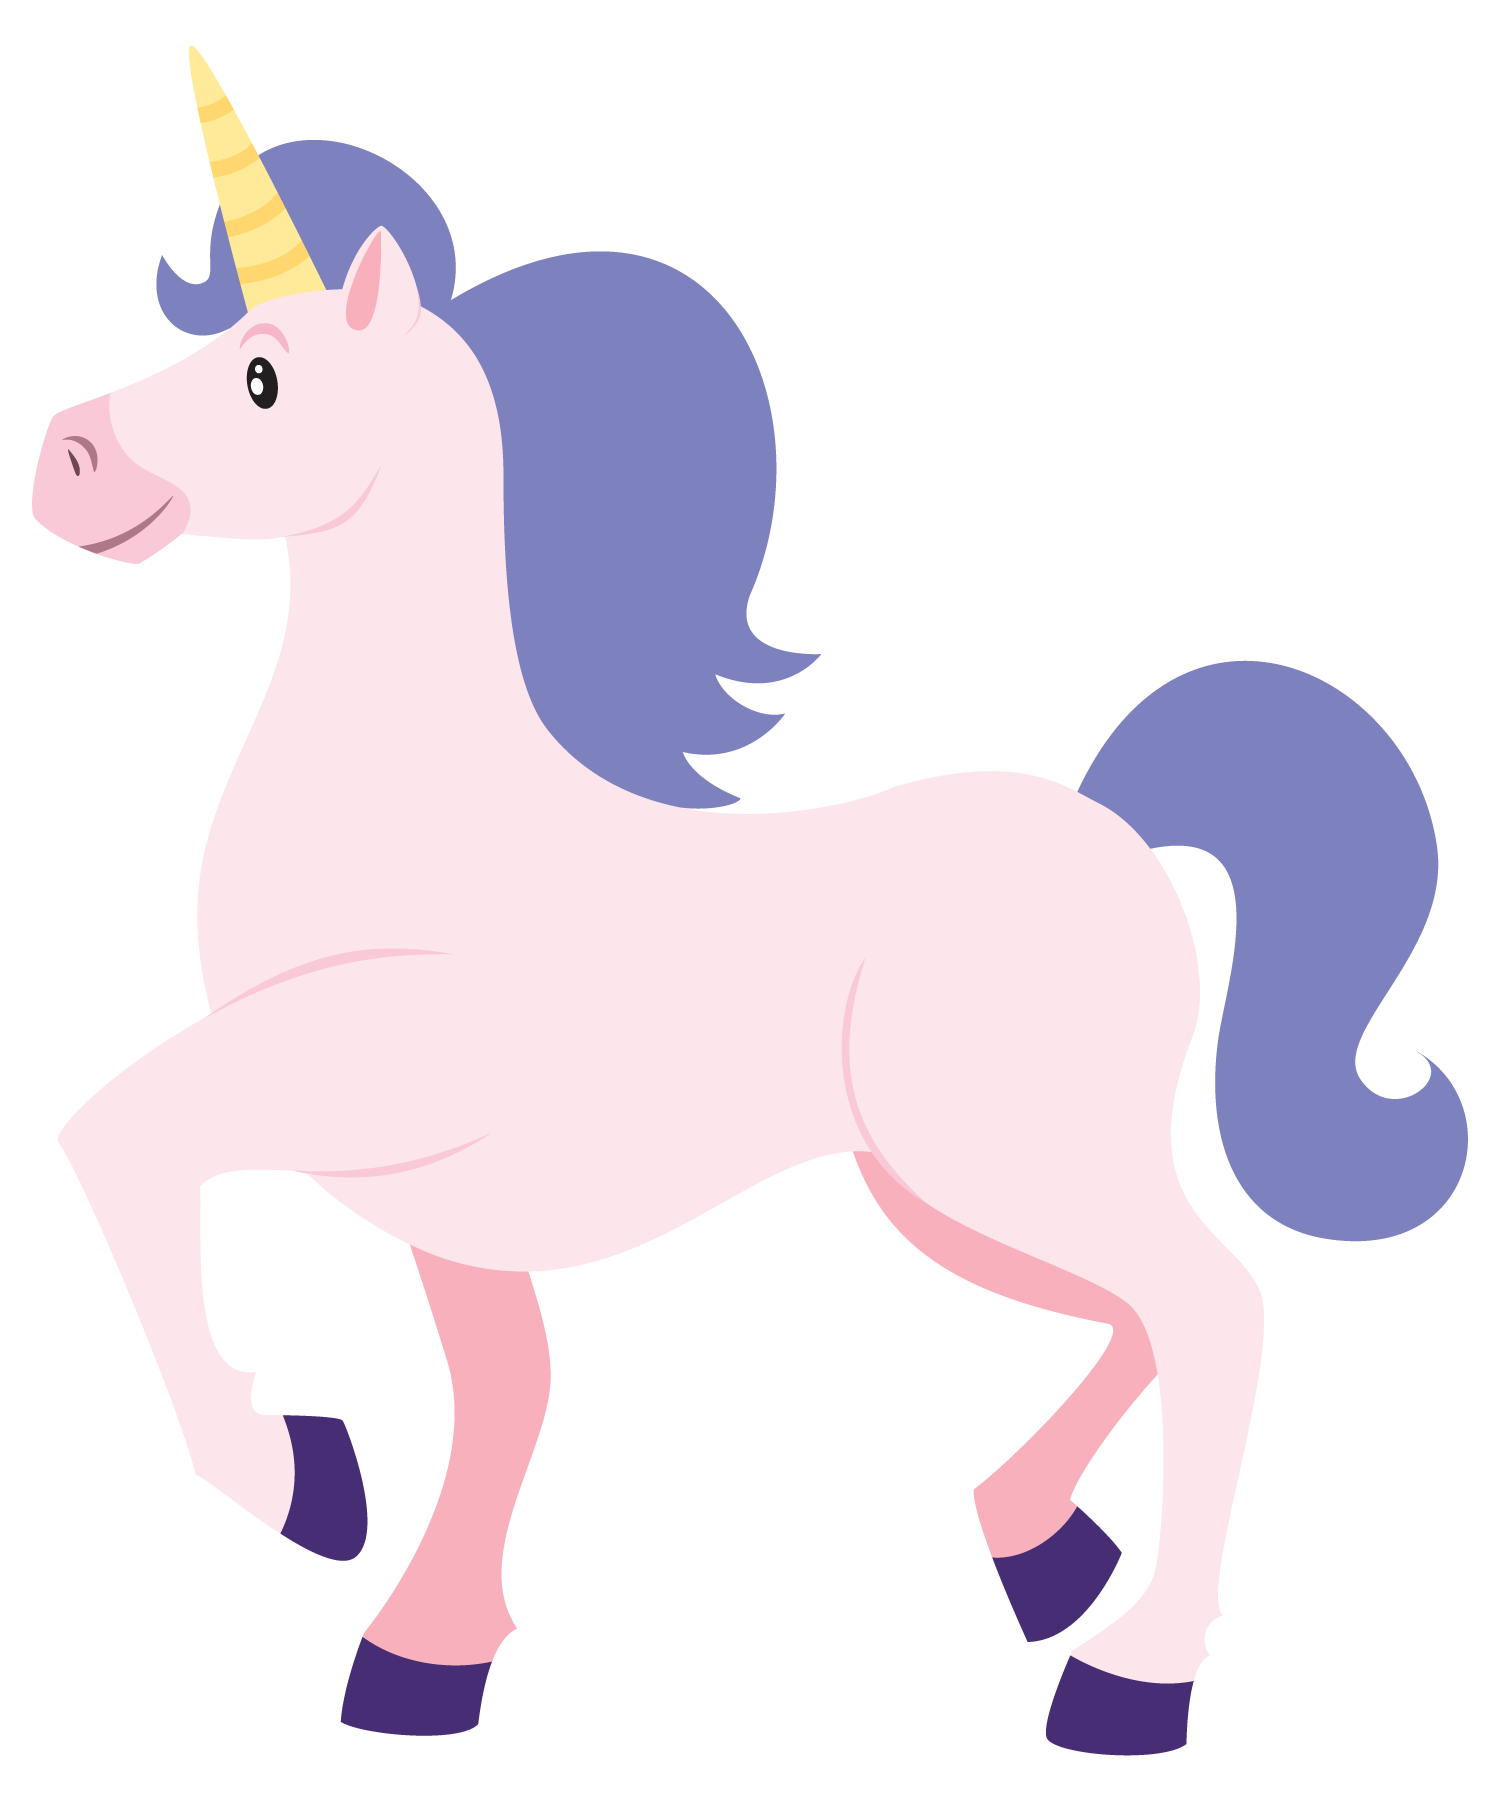 Unicorn clipart Clip cute cartoon Unicorns Unicorn